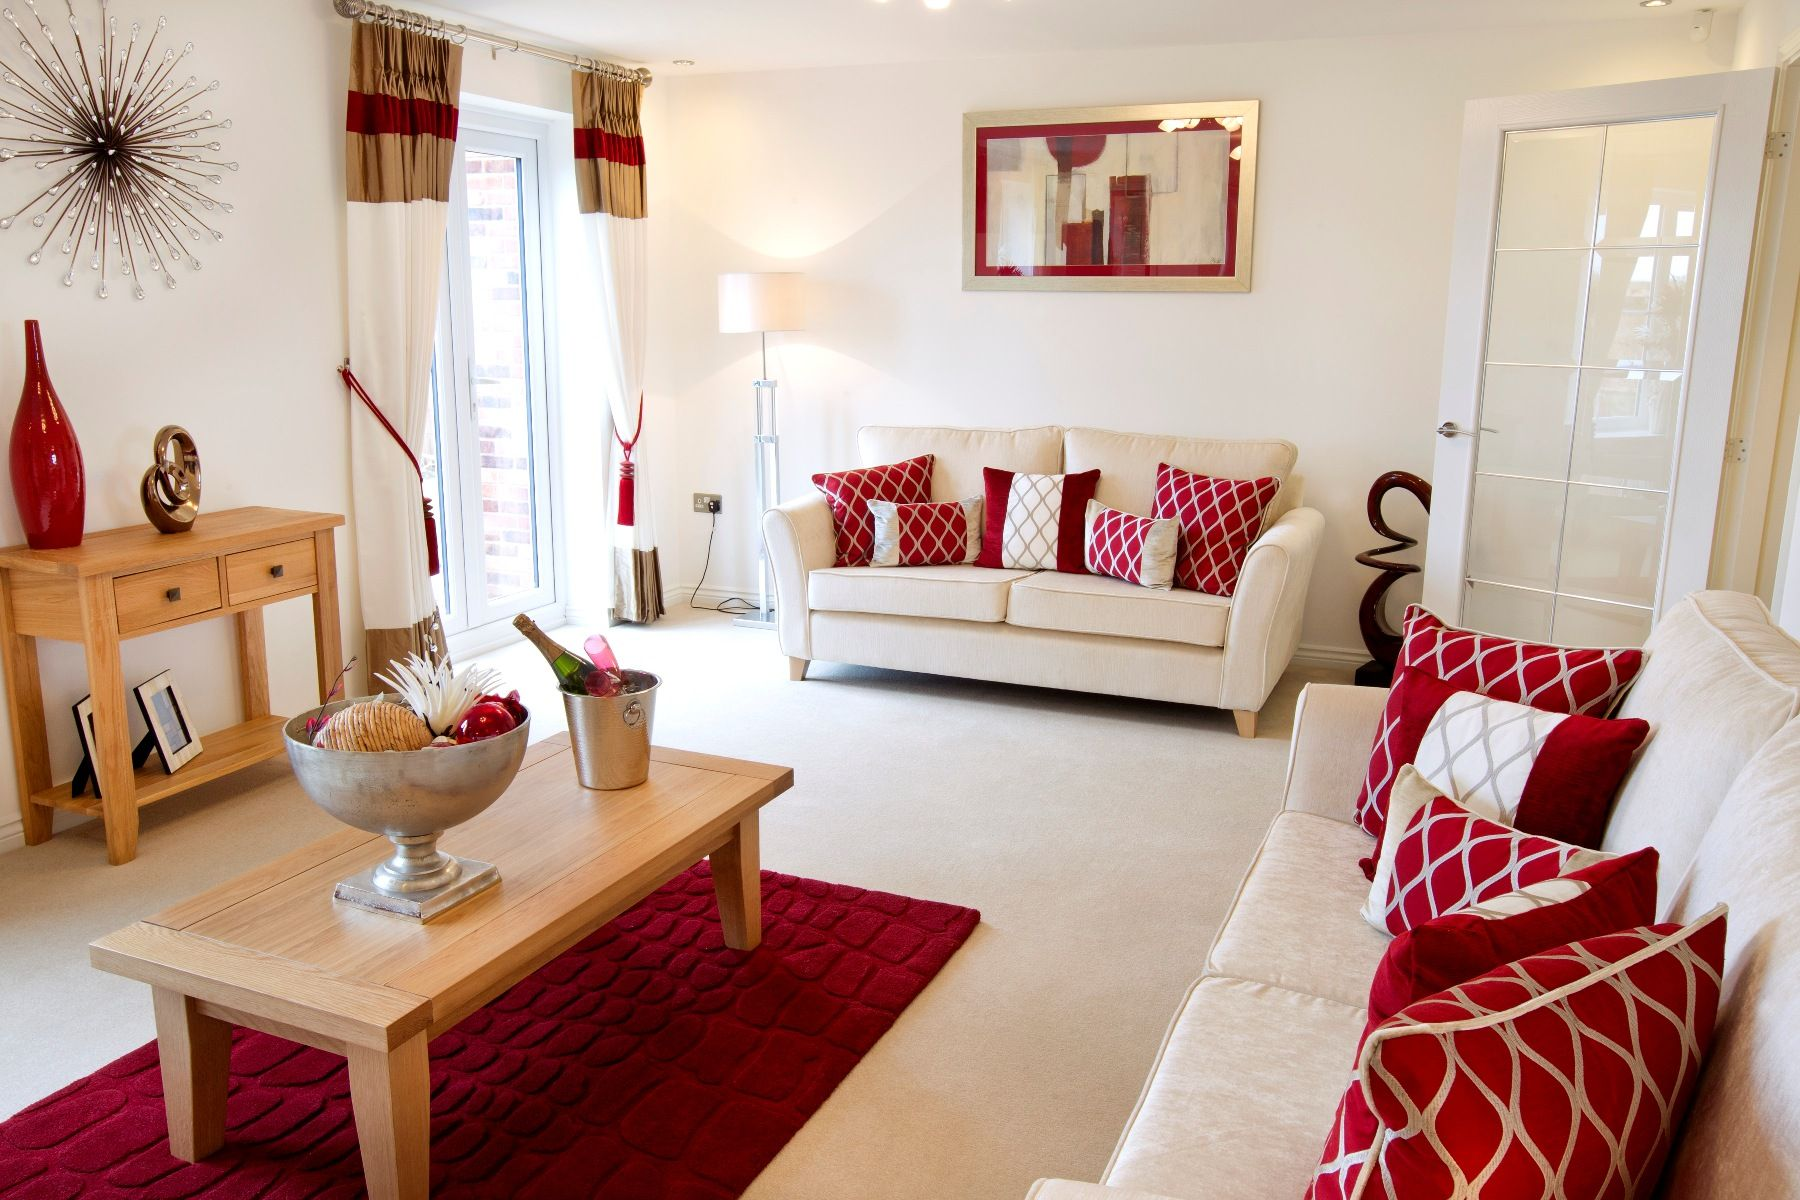 Red Hues Complement The Welcoming Cream Interior Of This